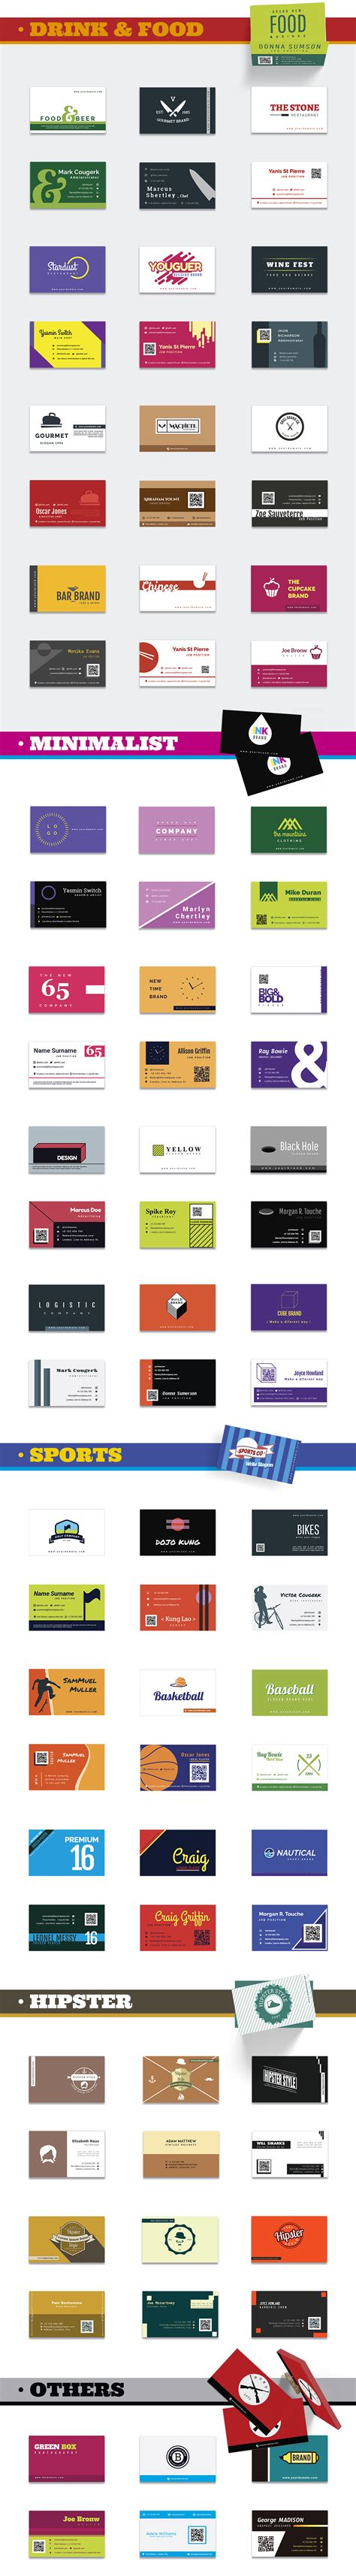 Business Cards Psd Templates Mega Pack by Business Cards Psd Templates Mega Pack Gallery